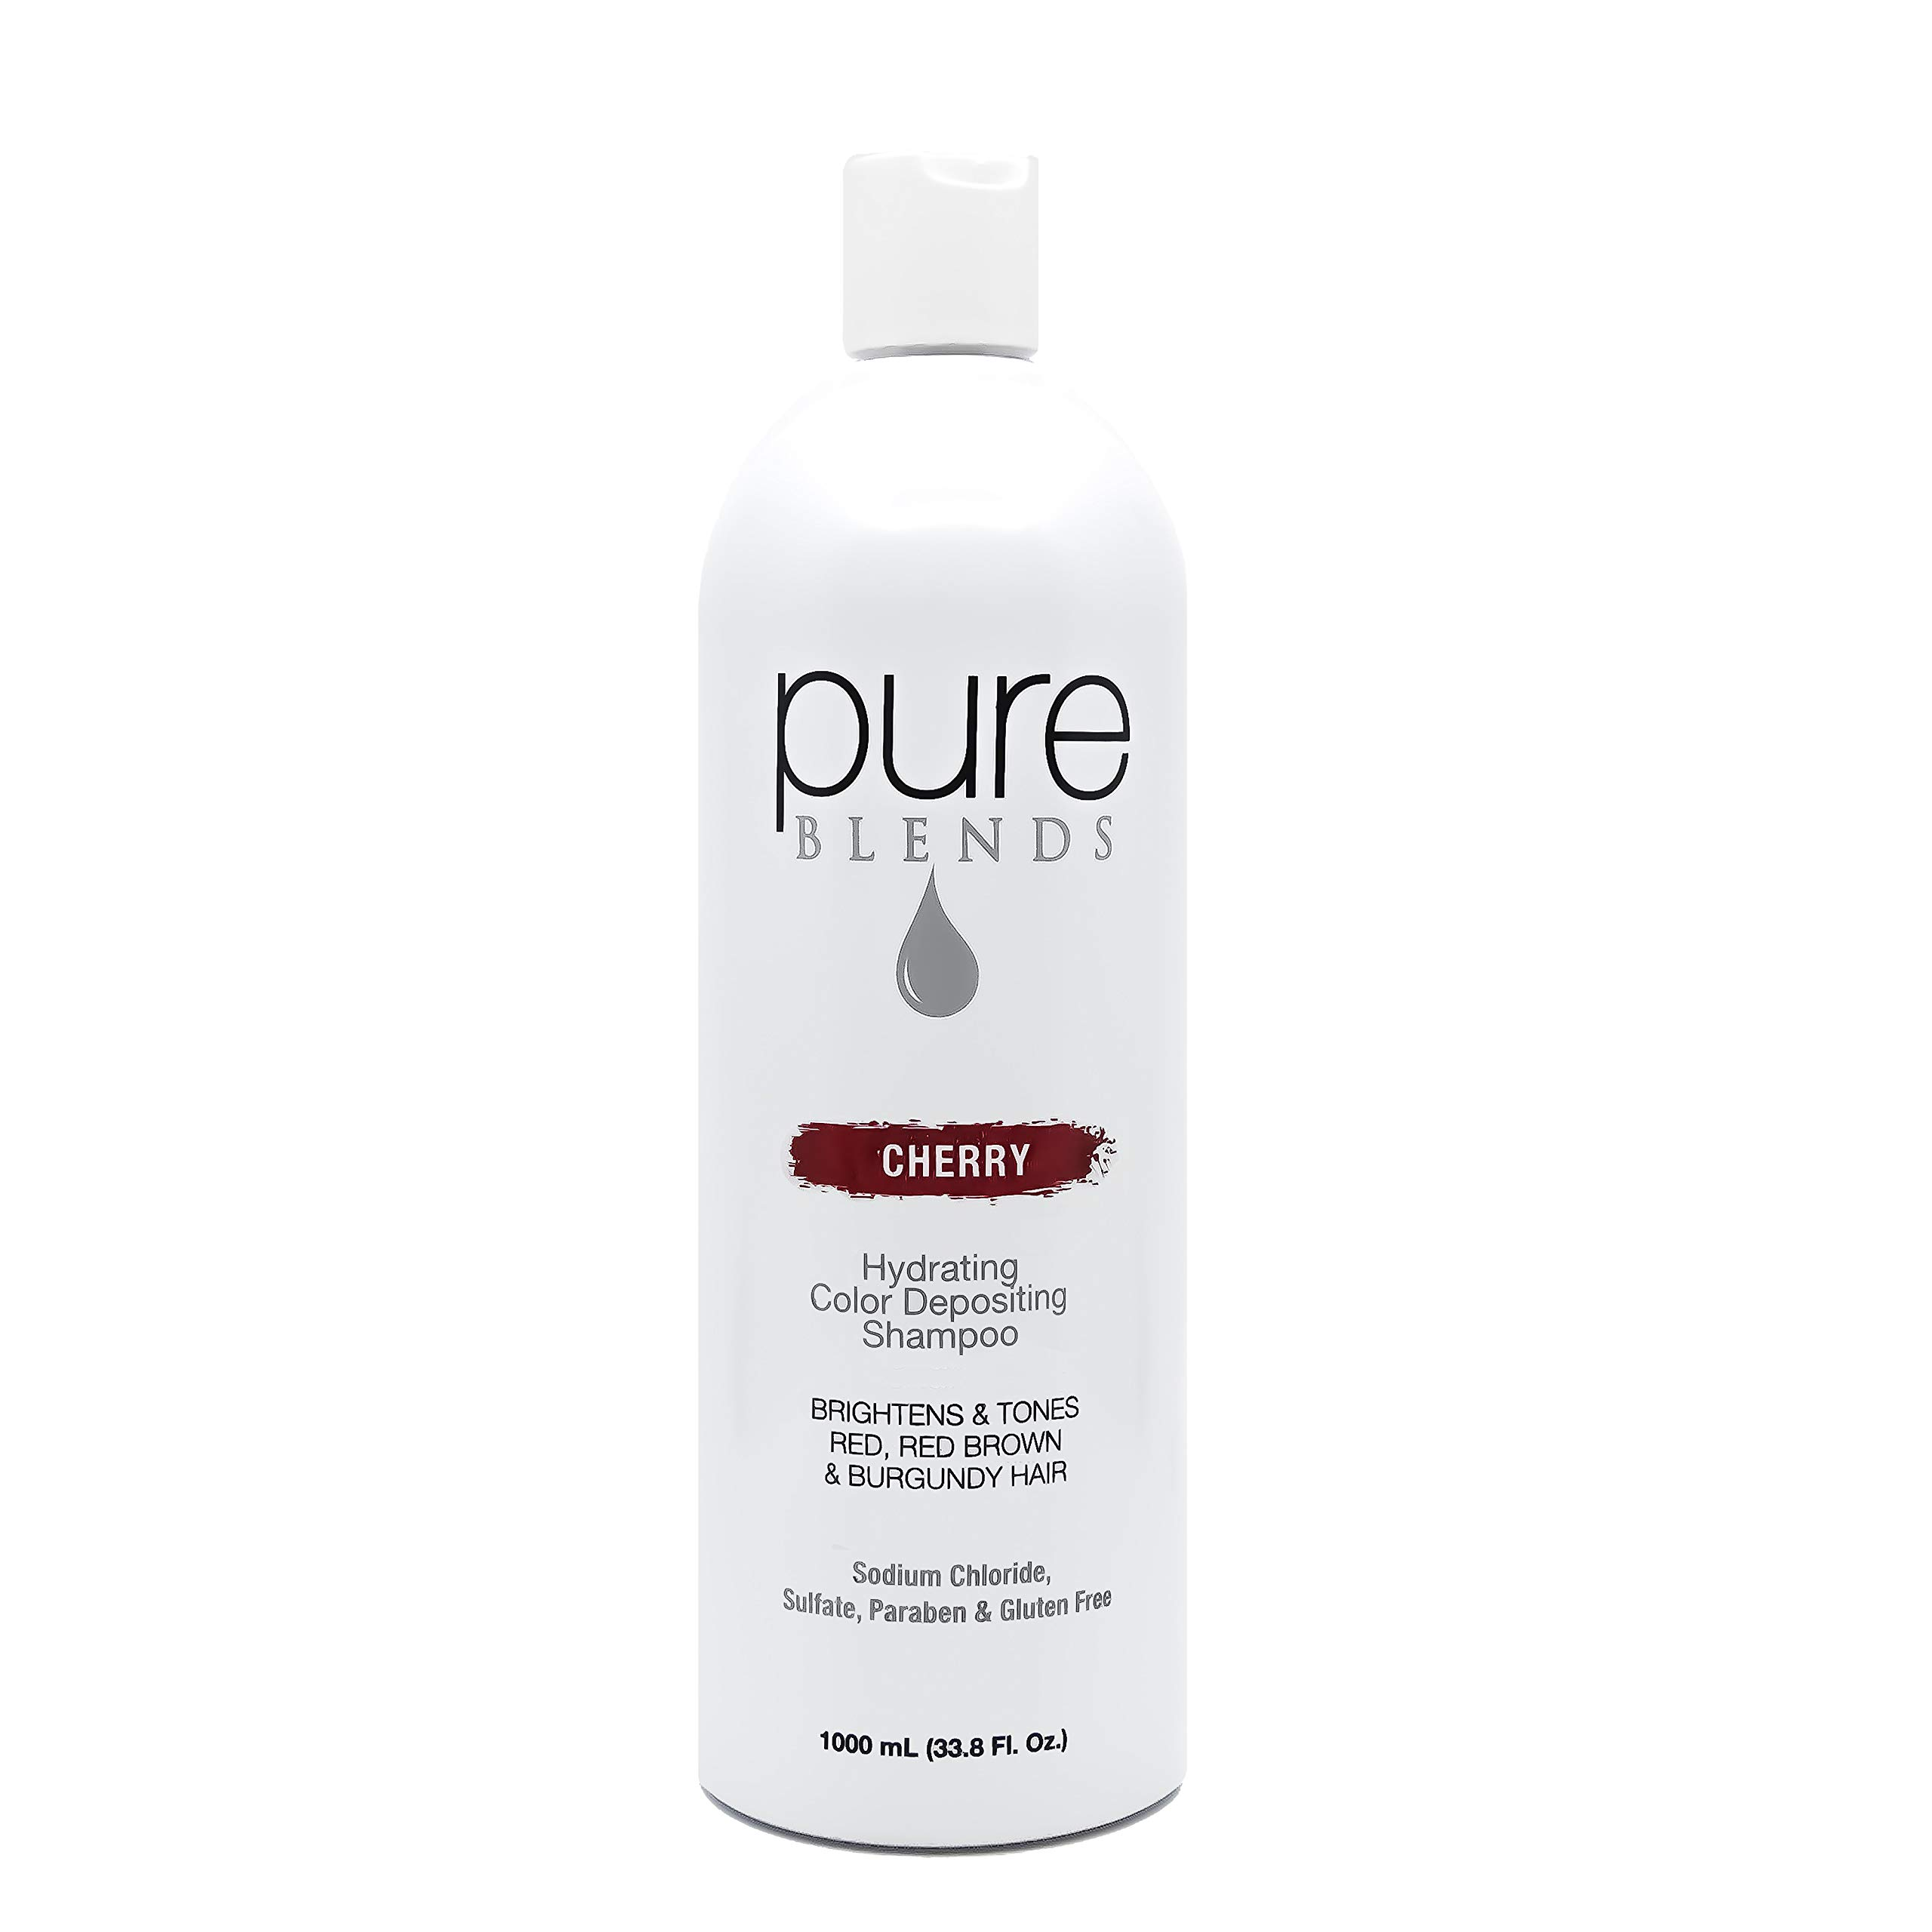 Pure Blends Hydrating Color Depositing Shampoo - Cherry (Red, Red Brown and Burgundy Hair) 33.8 Ounce - Salon Quality by Pure Blends